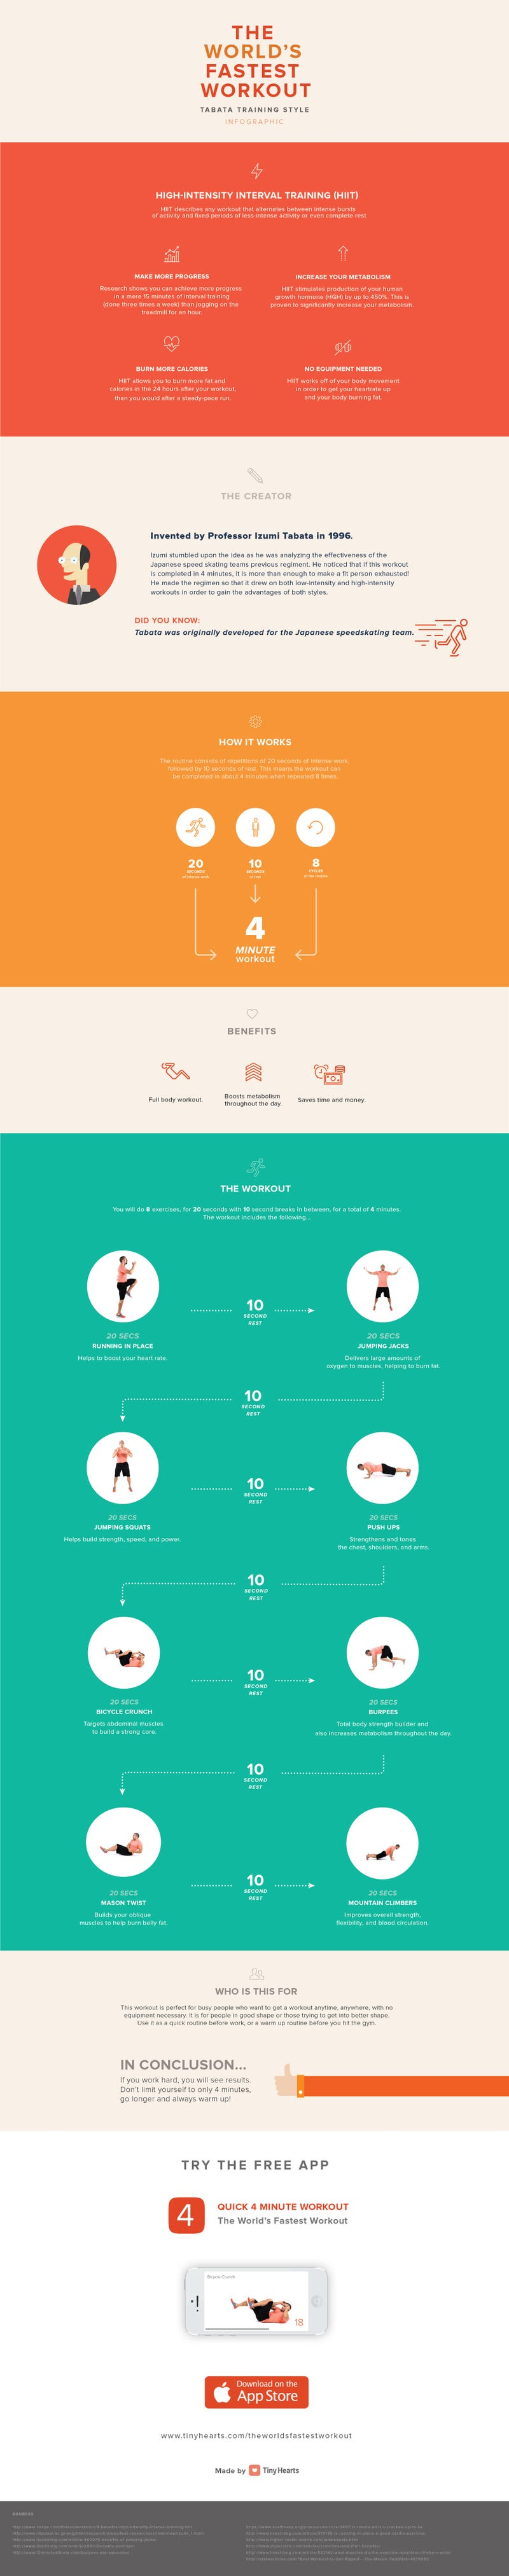 This Graphic Walks You Through the Four-Minute Workout